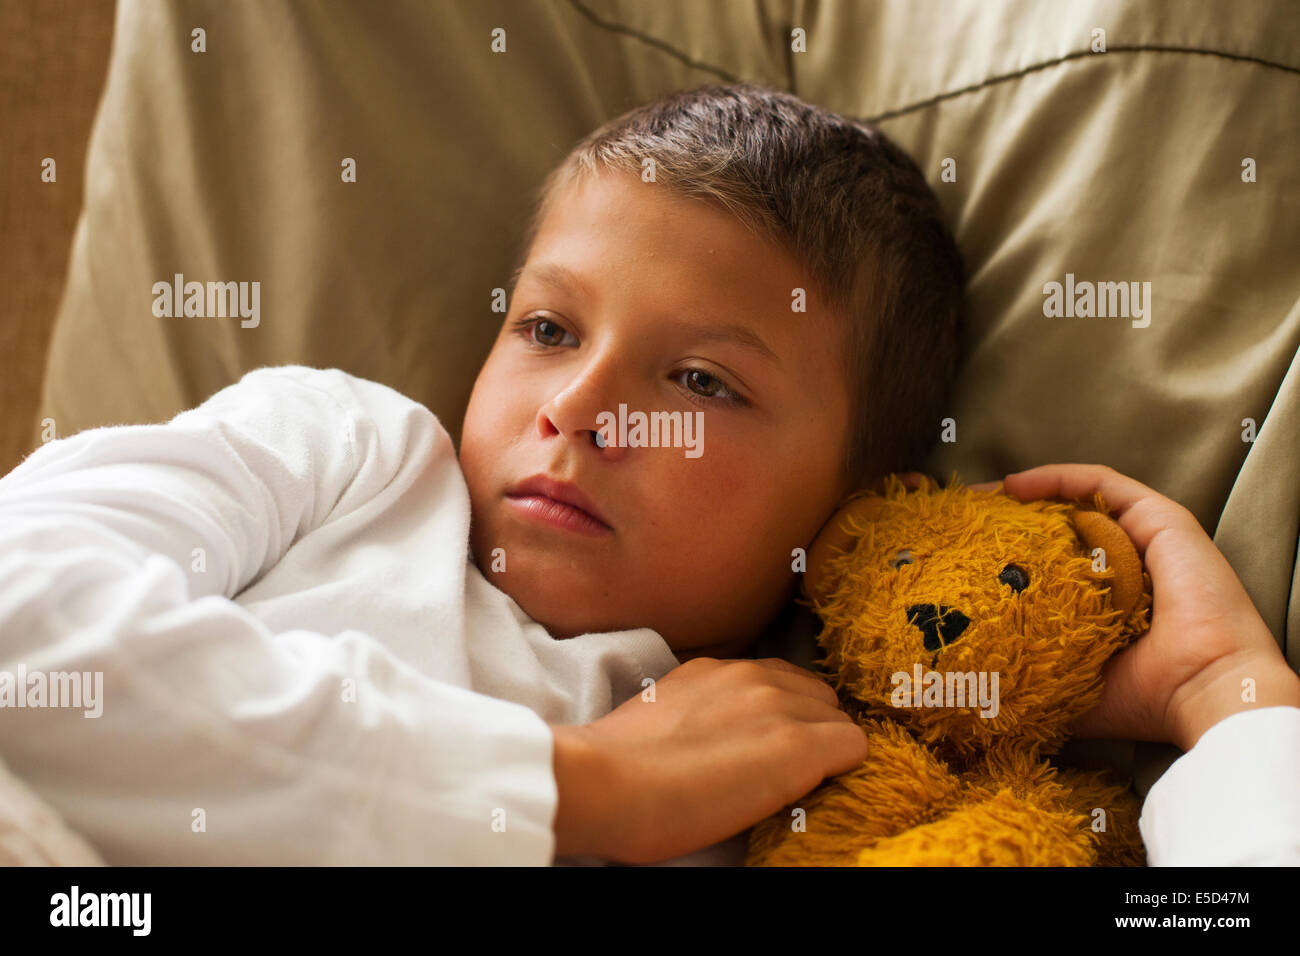 child feeling sick in bed - Stock Image